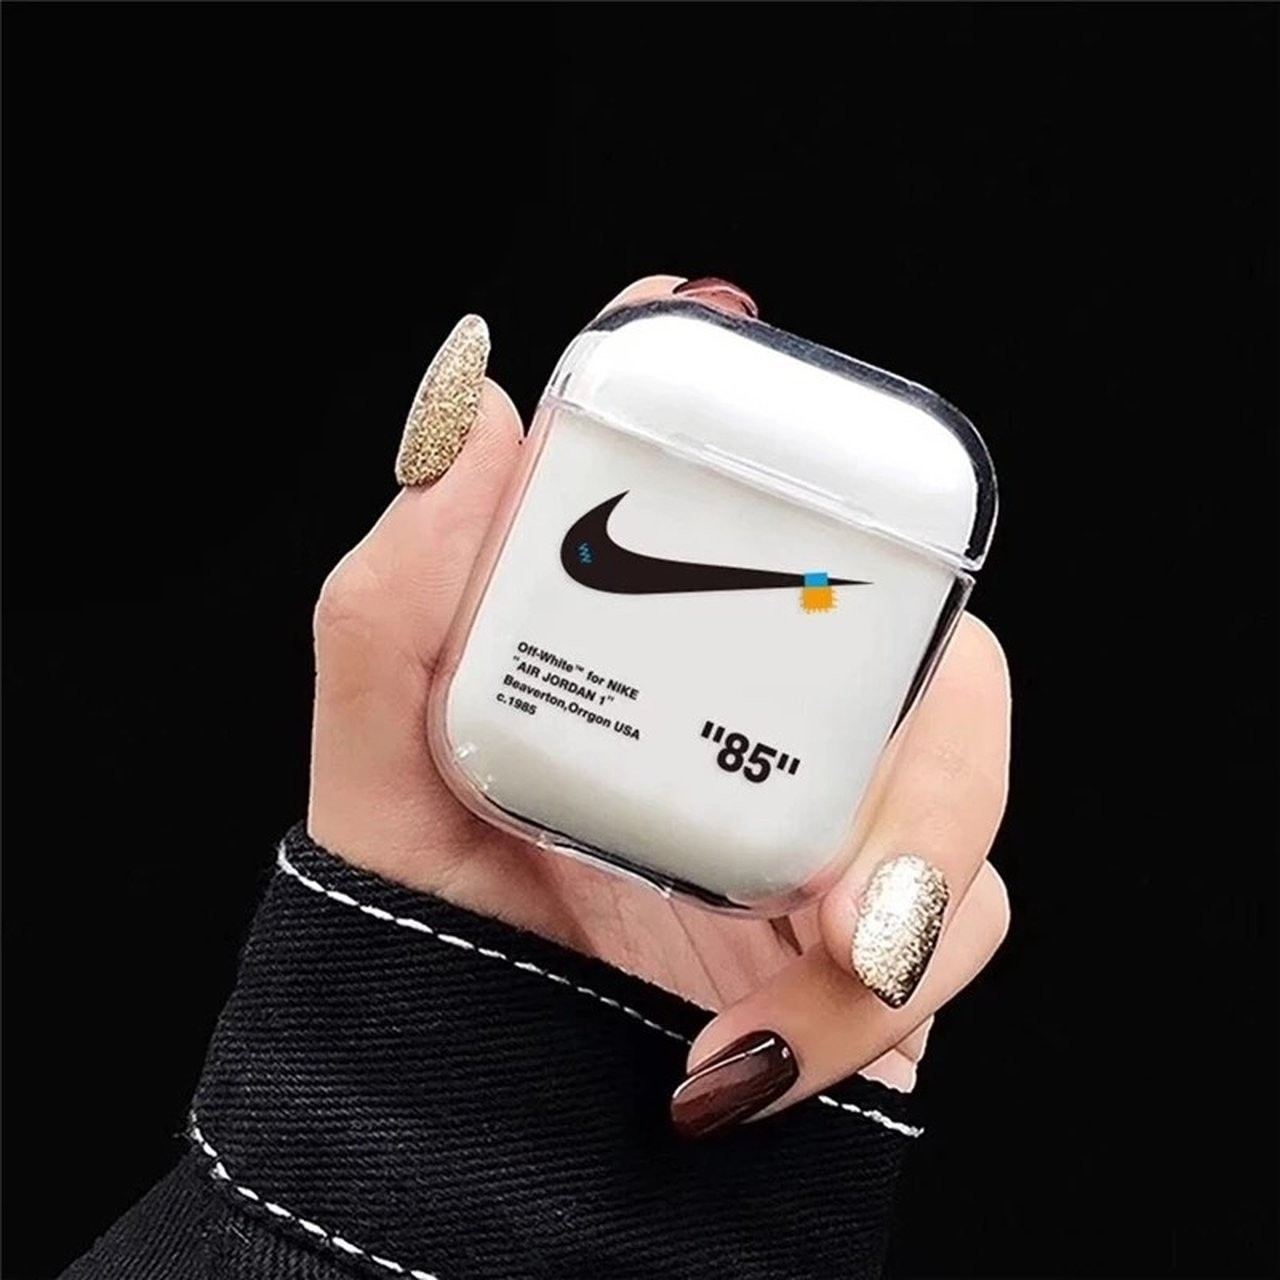 Offwhite Nike Style Airpods Case Free Shipping To Depop